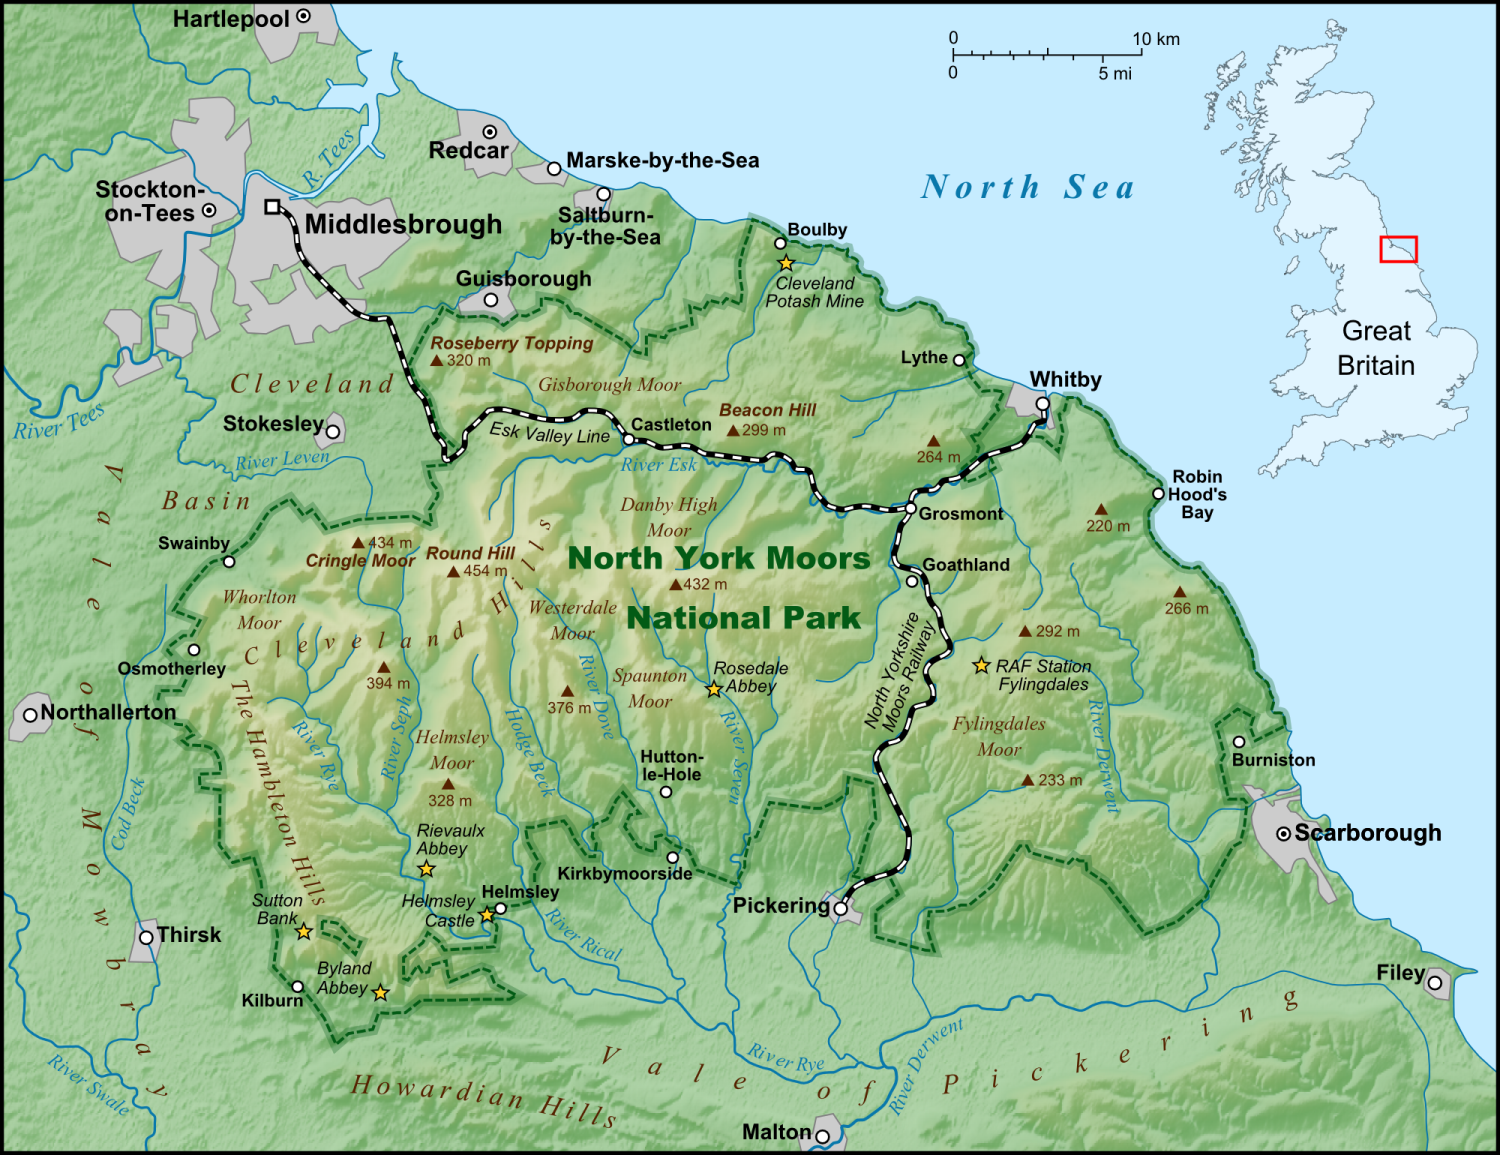 Sirius delays application for $2.7bn potash mine in English national park